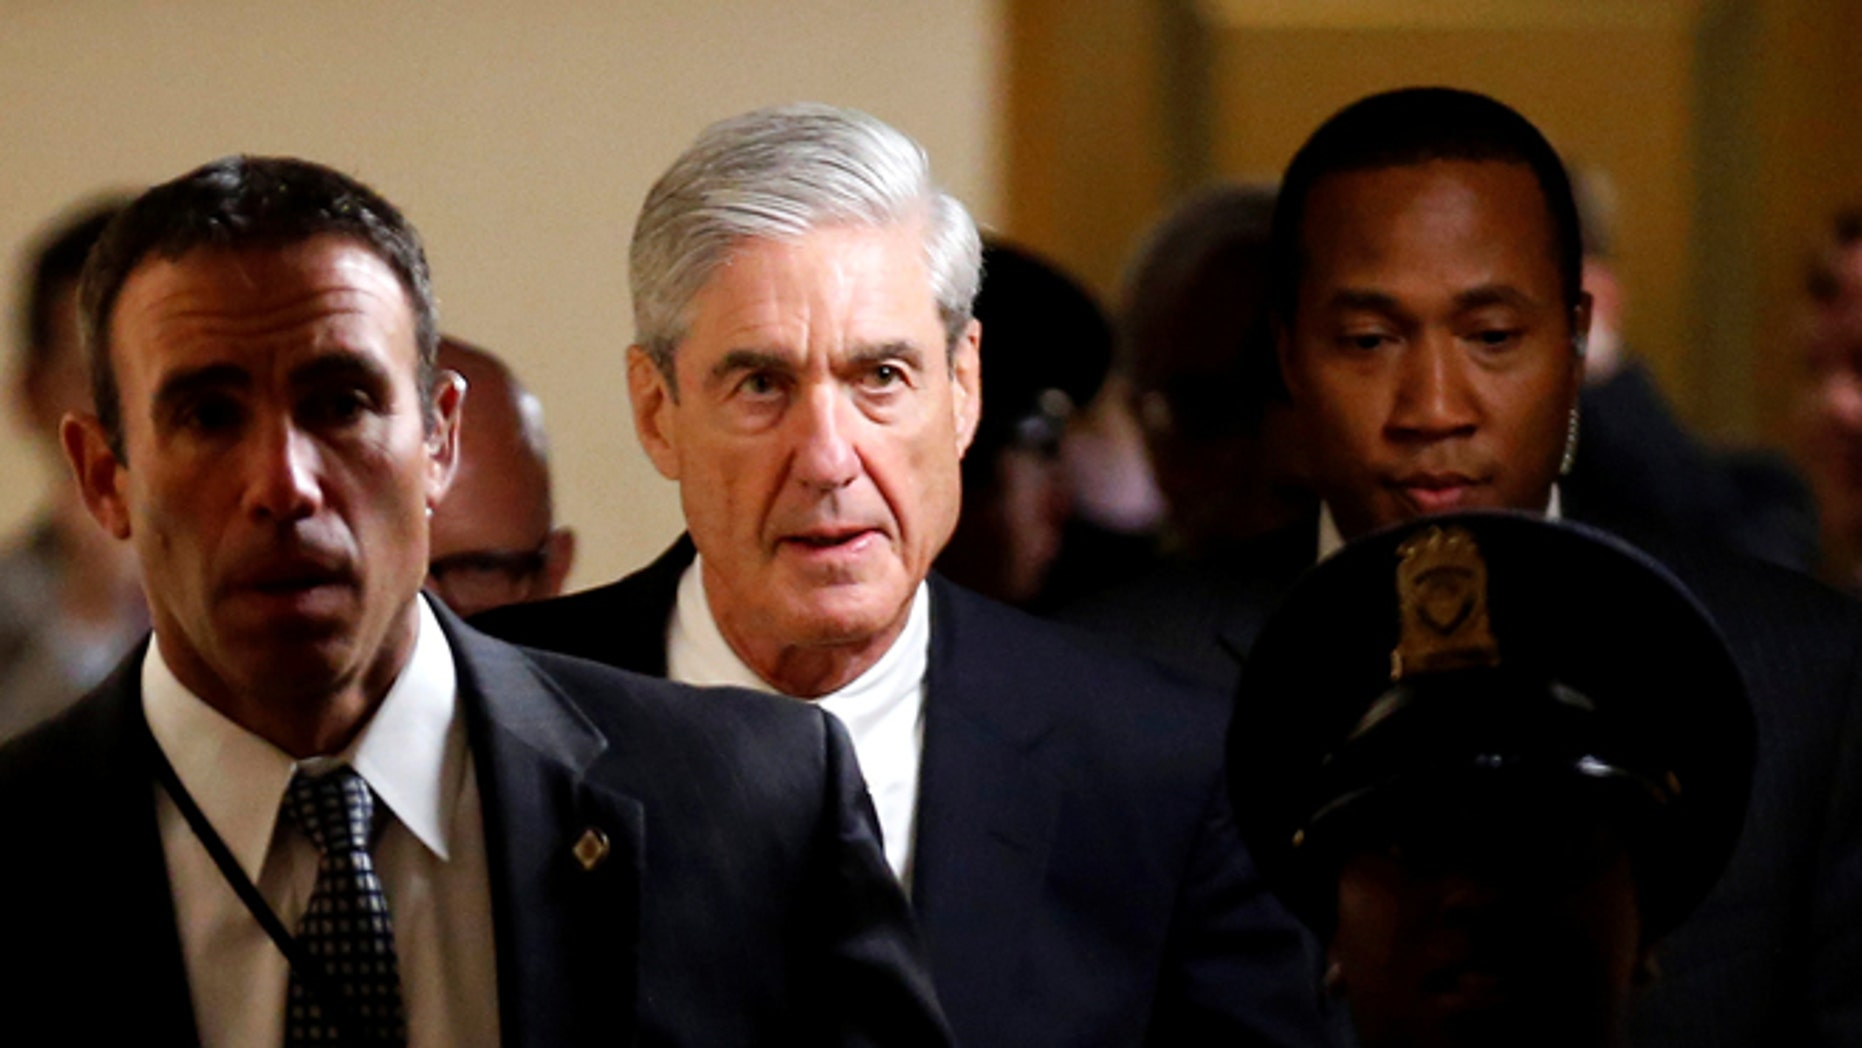 Robert Mueller's investigators subpoenaed more than a dozen Trump campaign officials requesting Russia-related documents last month.